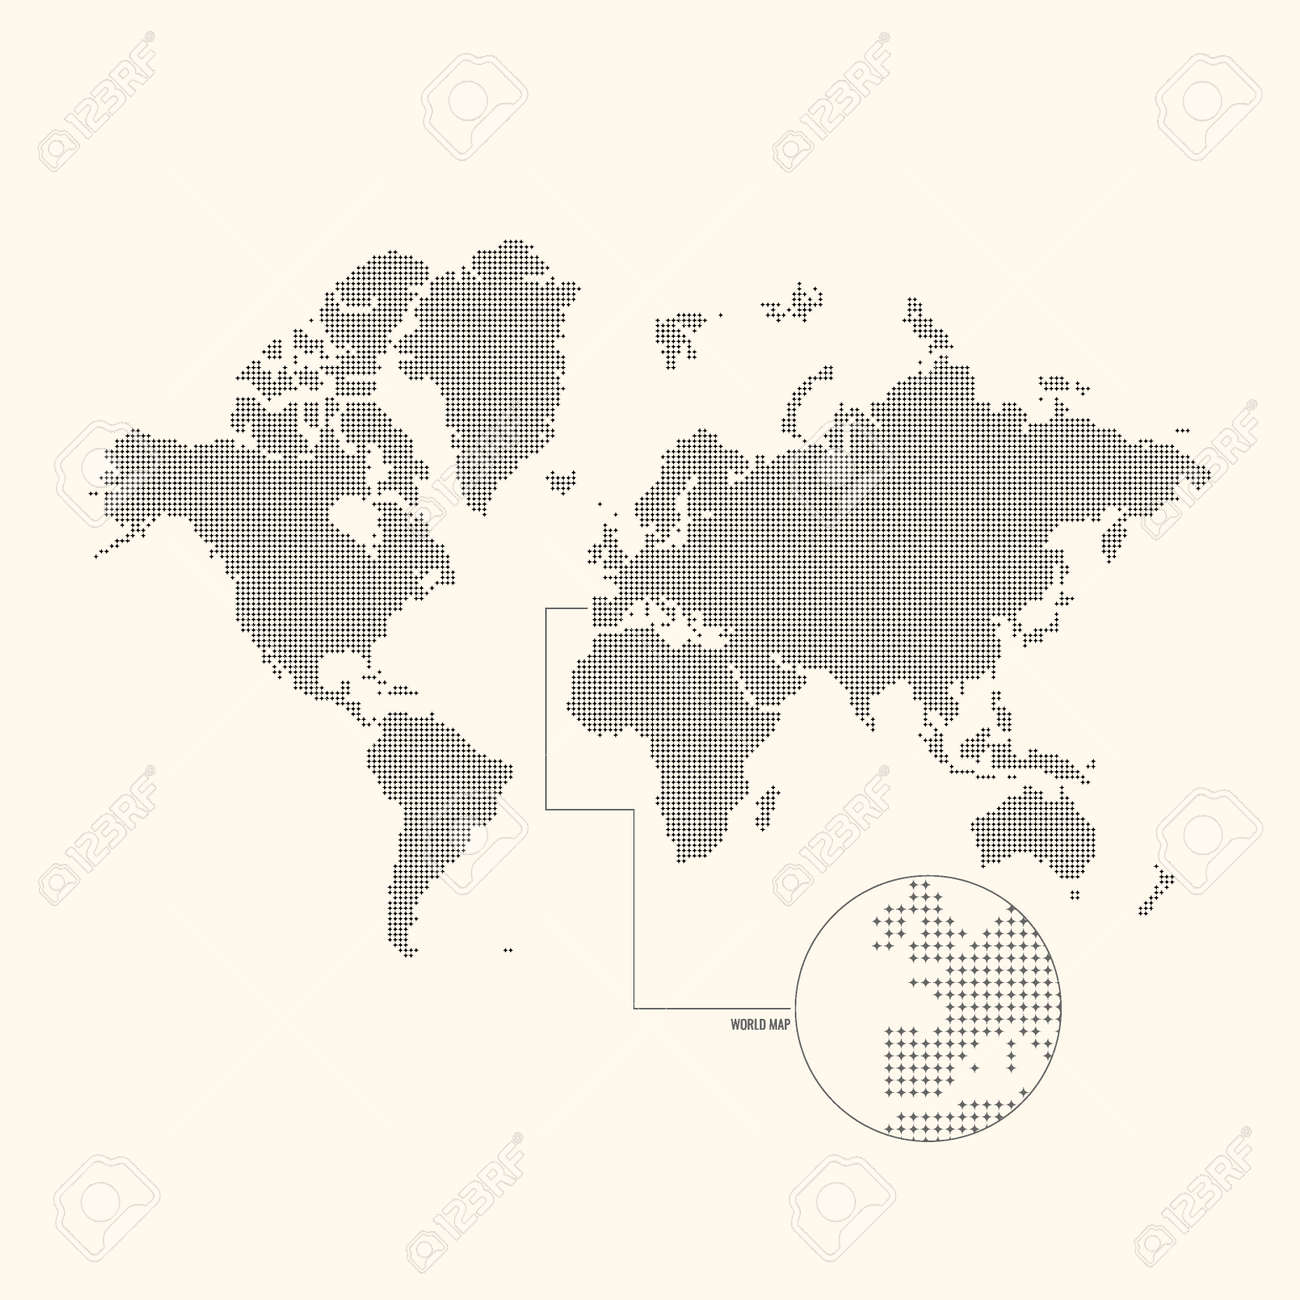 Dotted world map vector illustration royalty free cliparts dotted world map vector illustration stock vector 48192704 gumiabroncs Choice Image